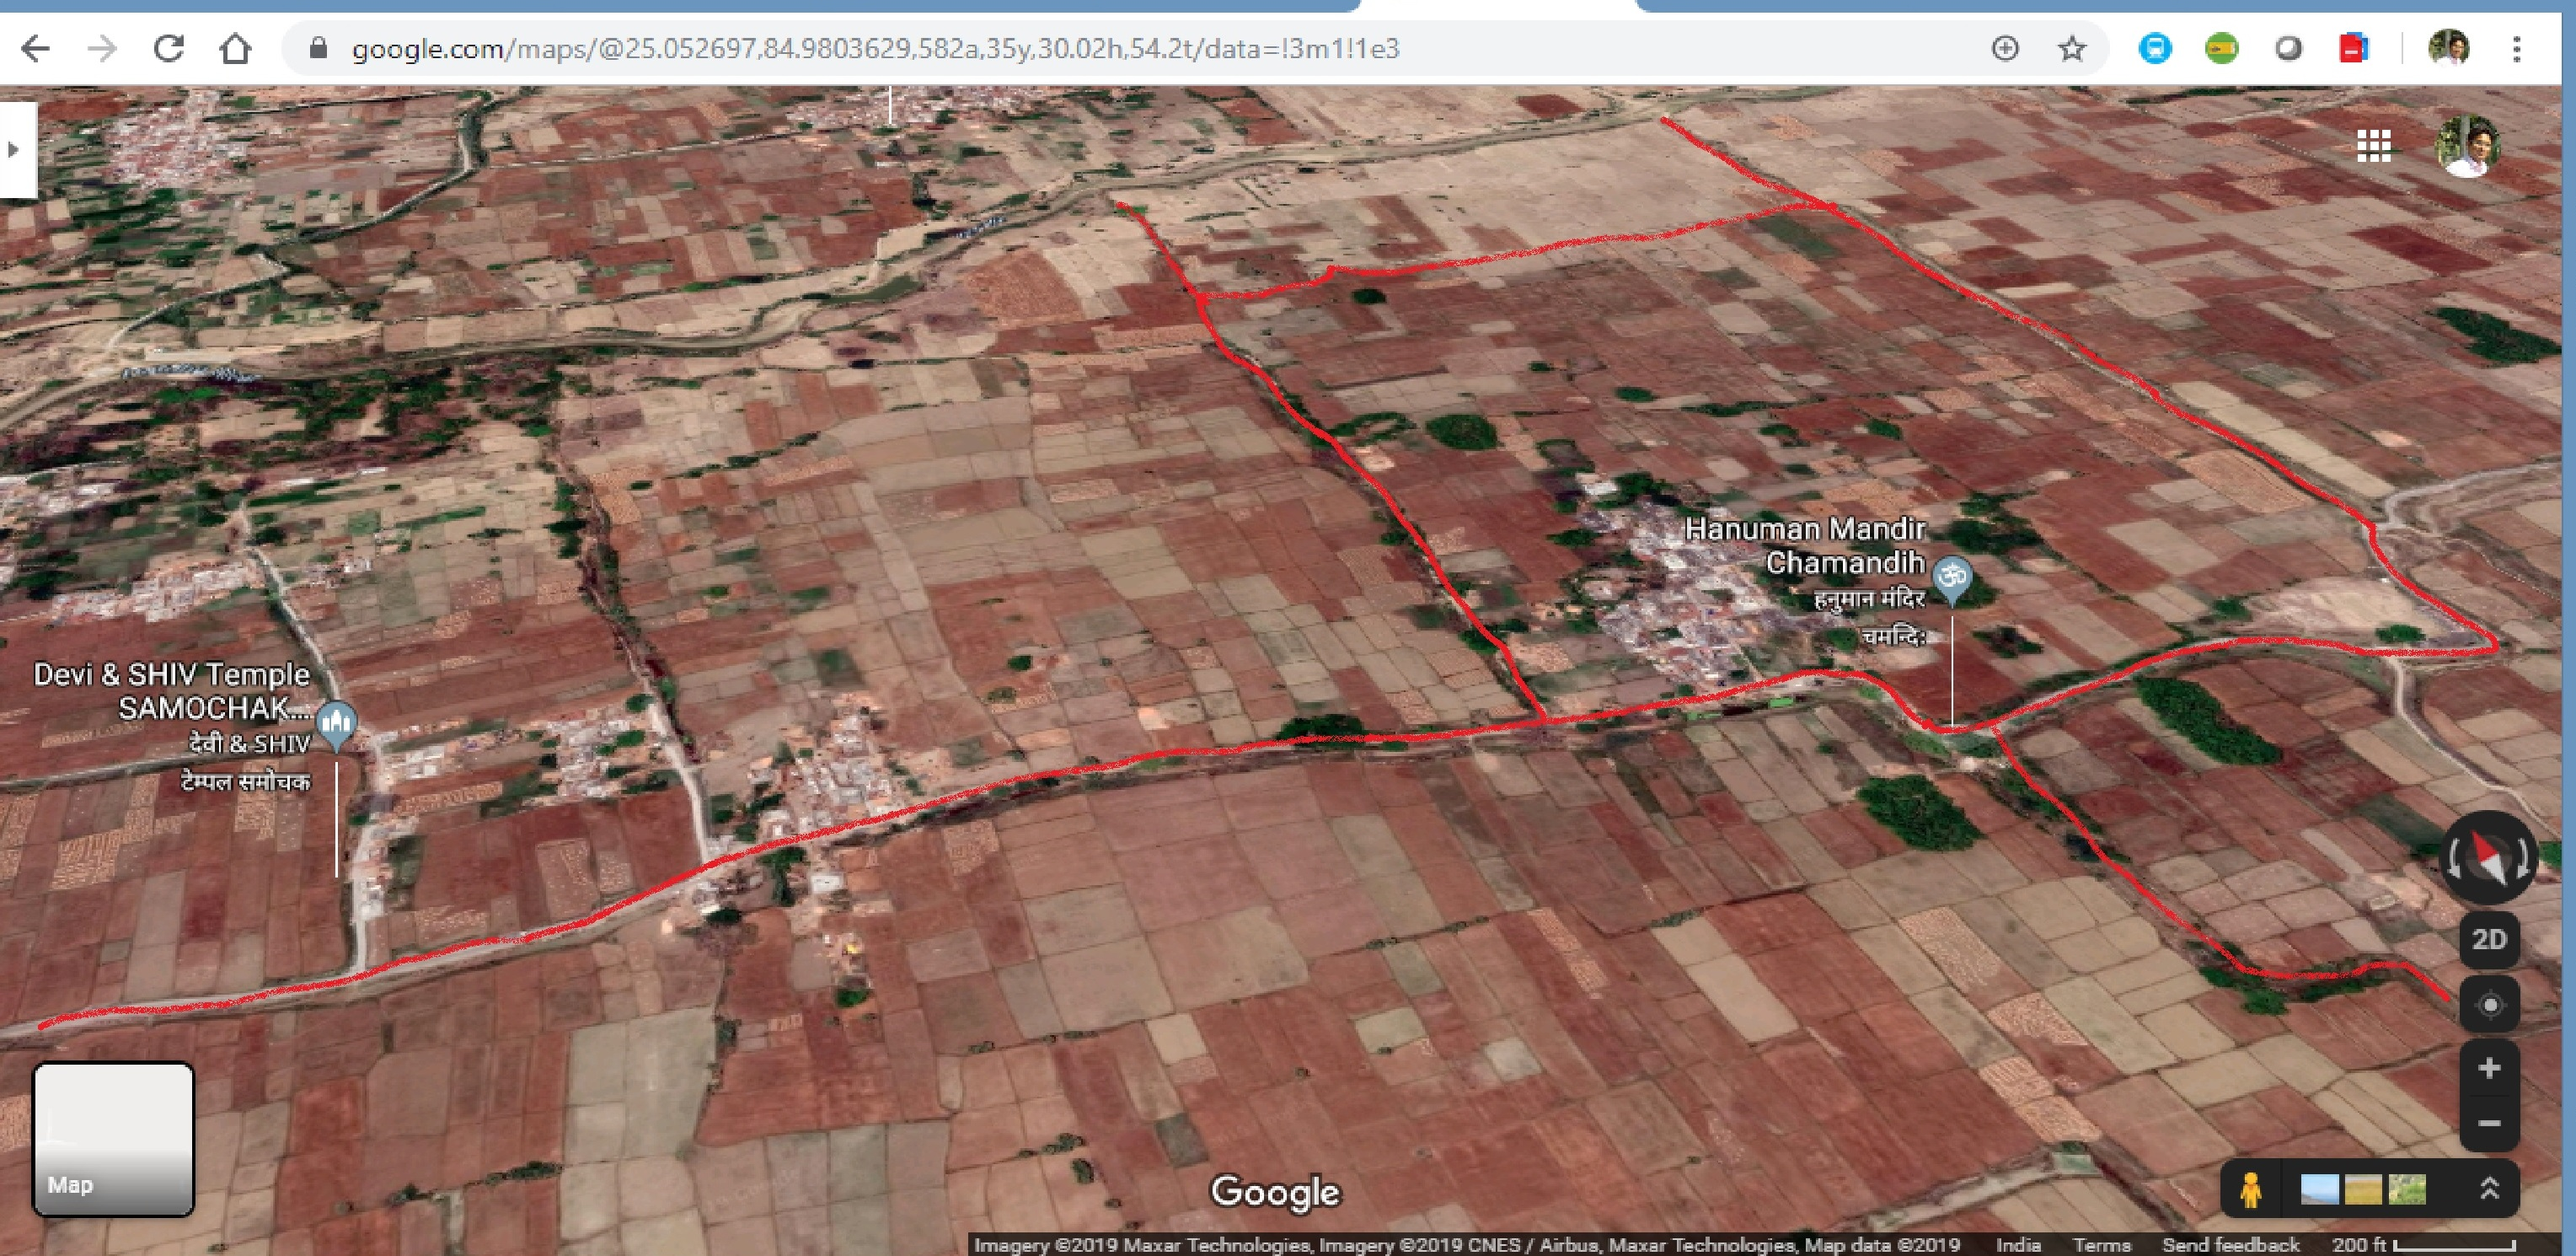 How can update road on google map - Google Maps Help